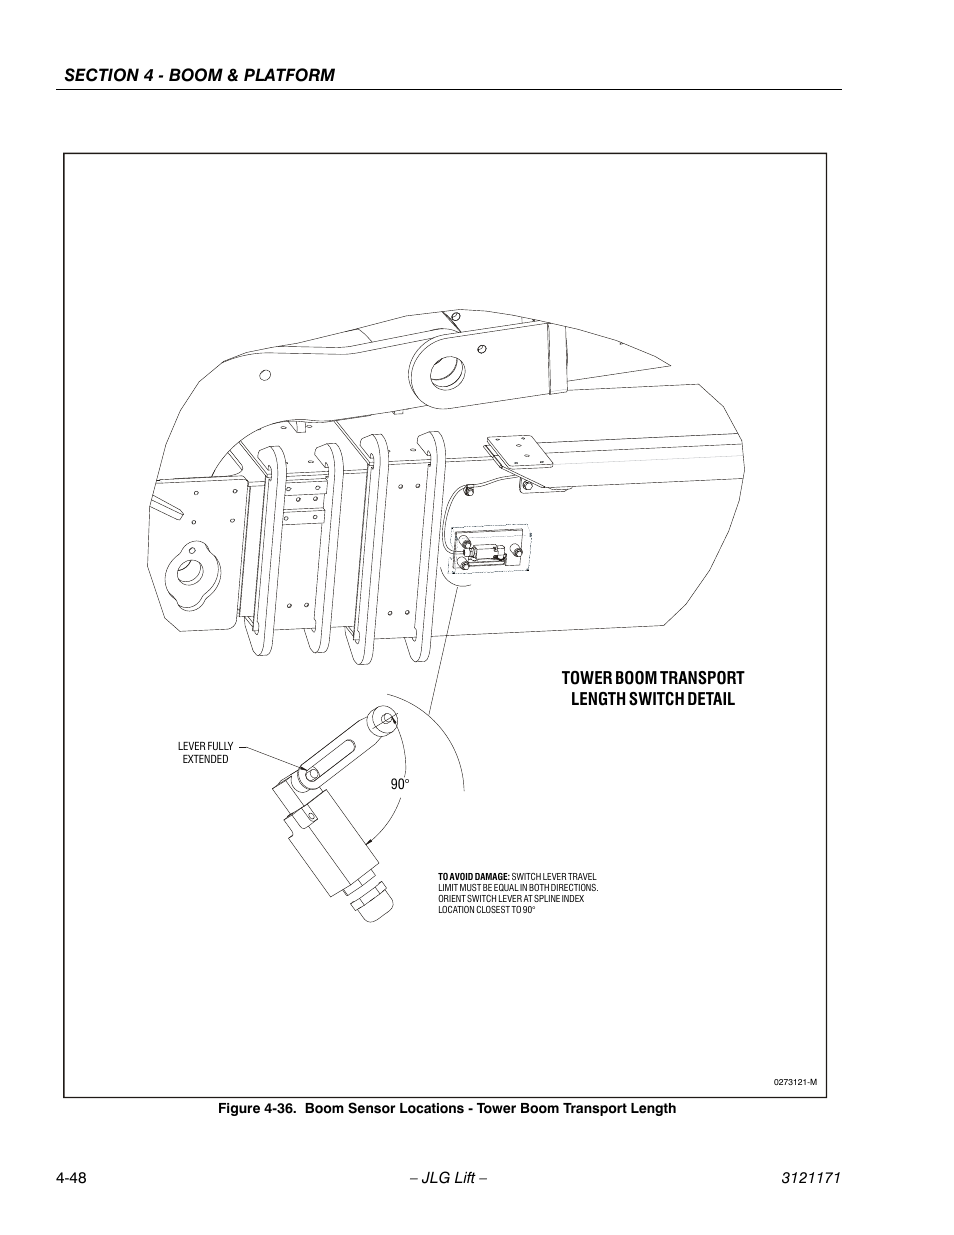 Tower boom transport length switch detail   JLG 1250AJP Service Manual User  Manual   Page 288 / 606